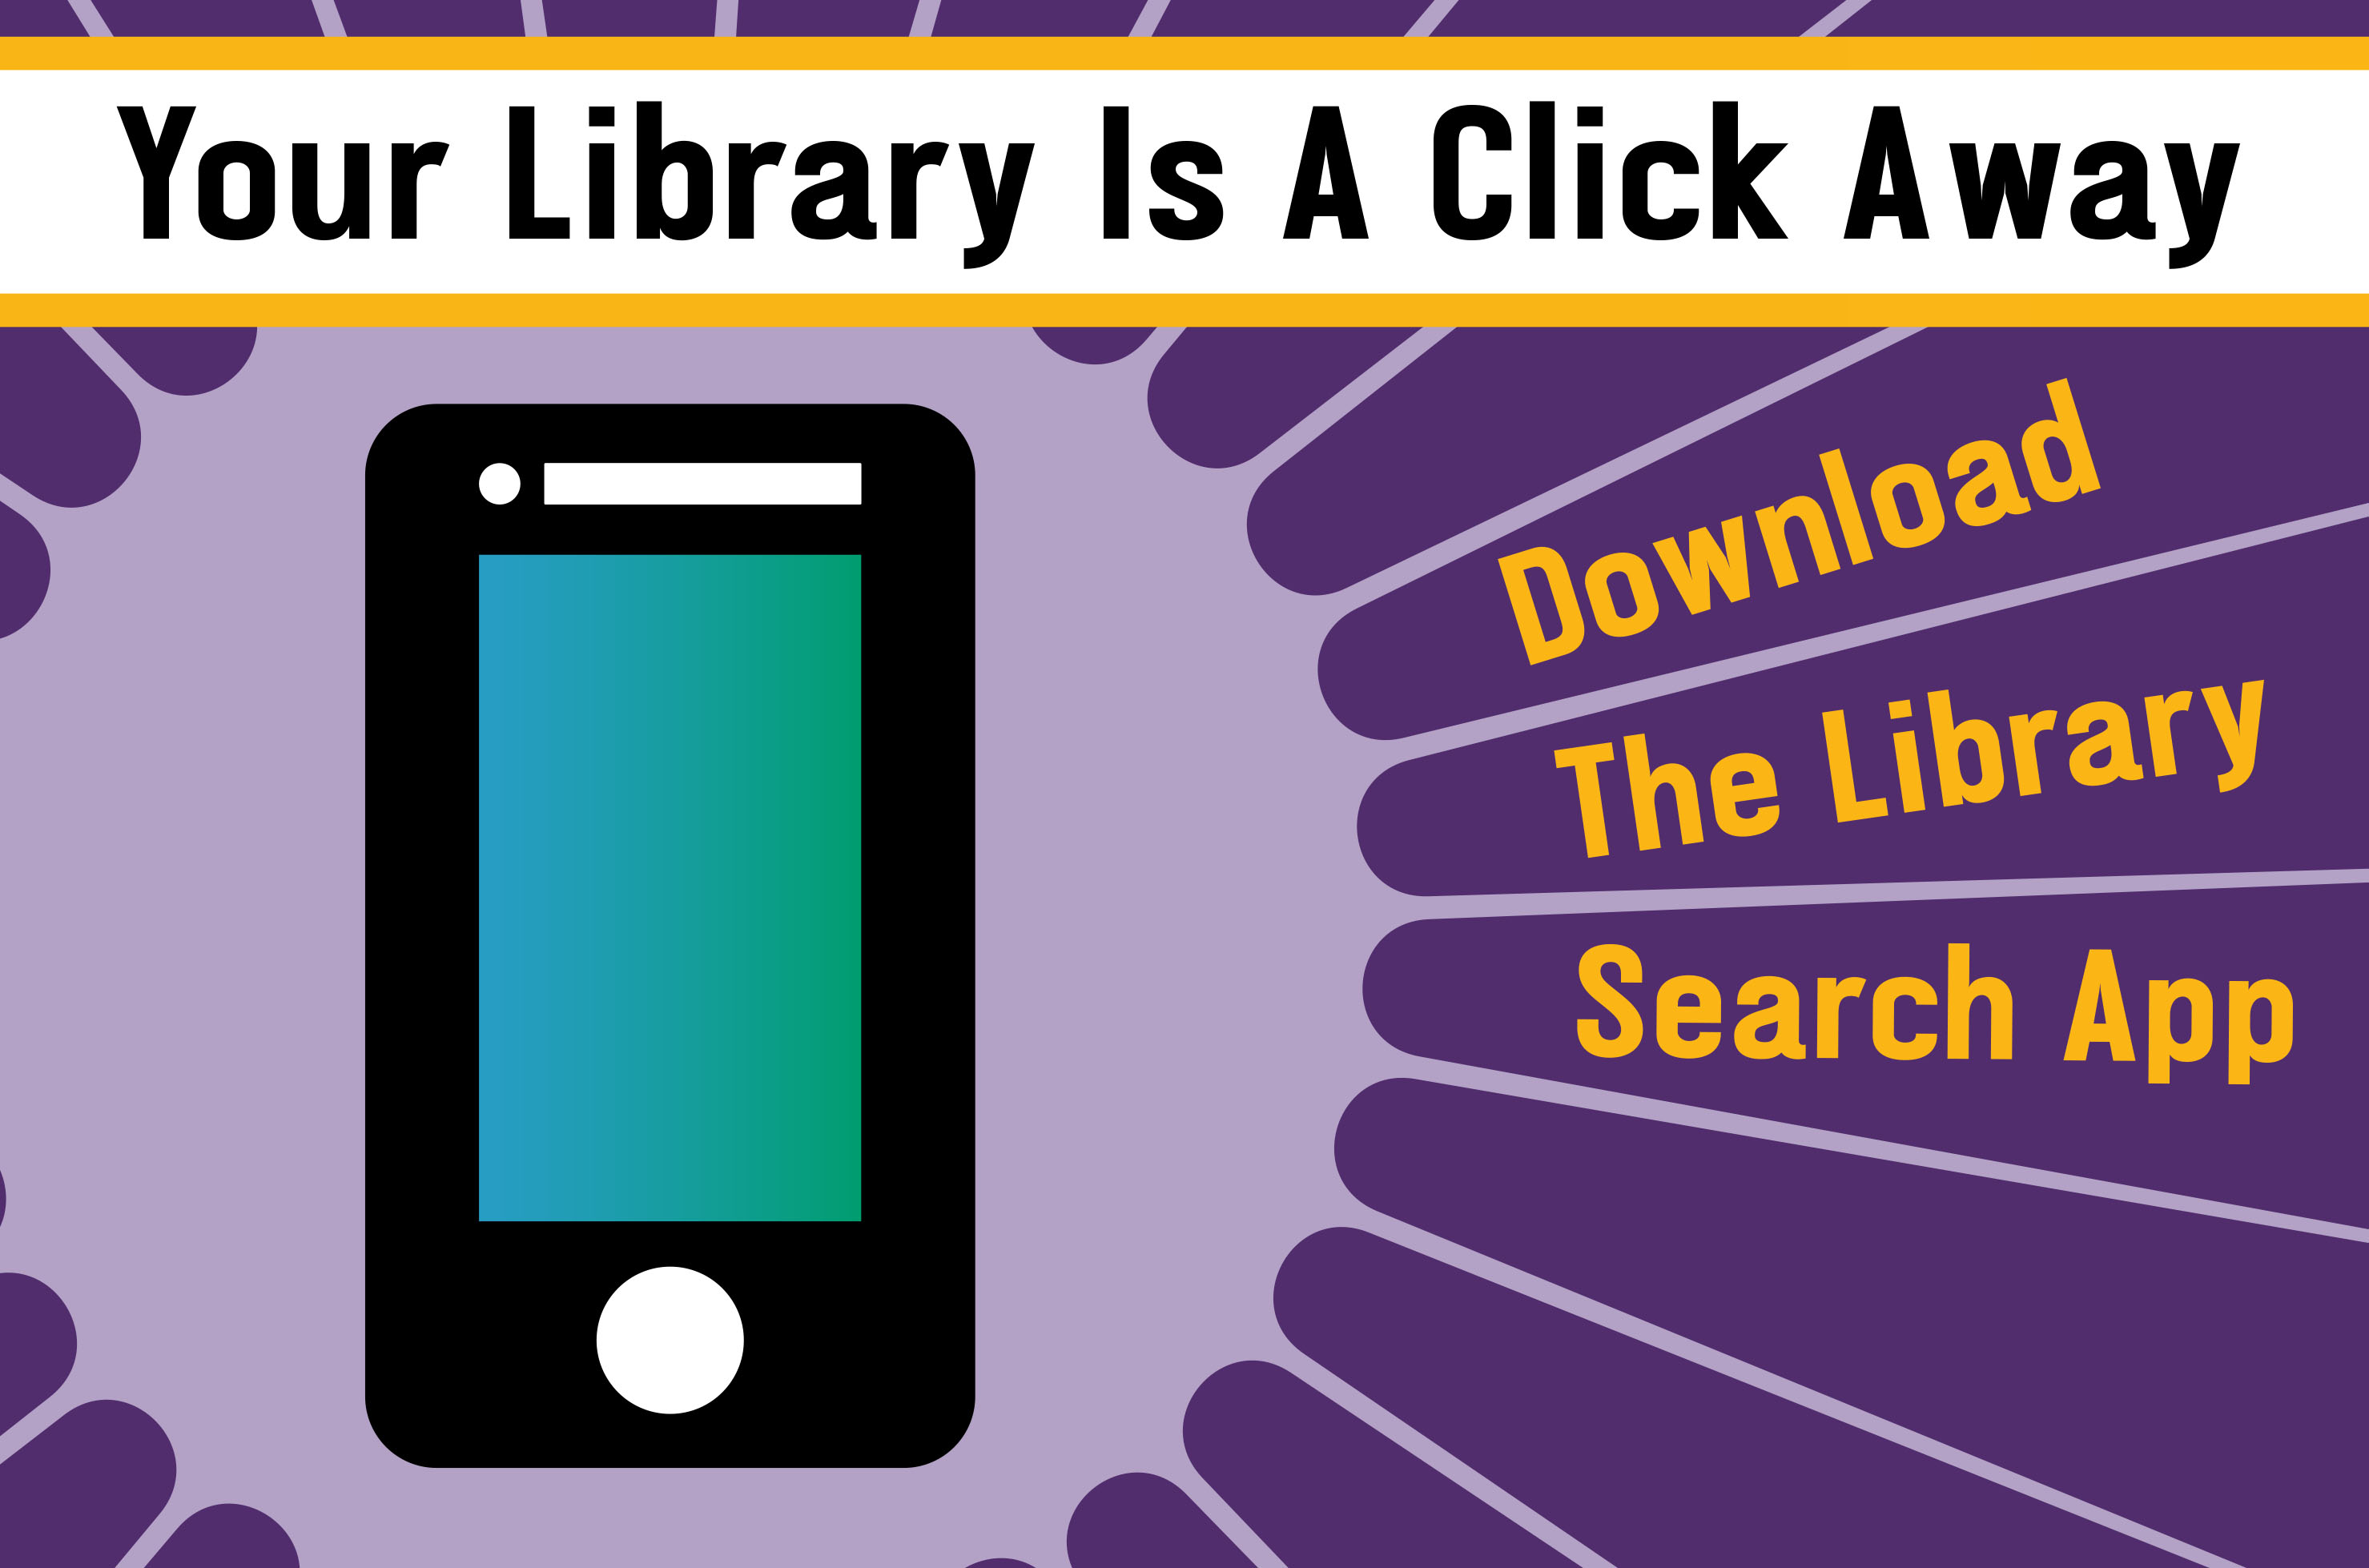 Library Search App